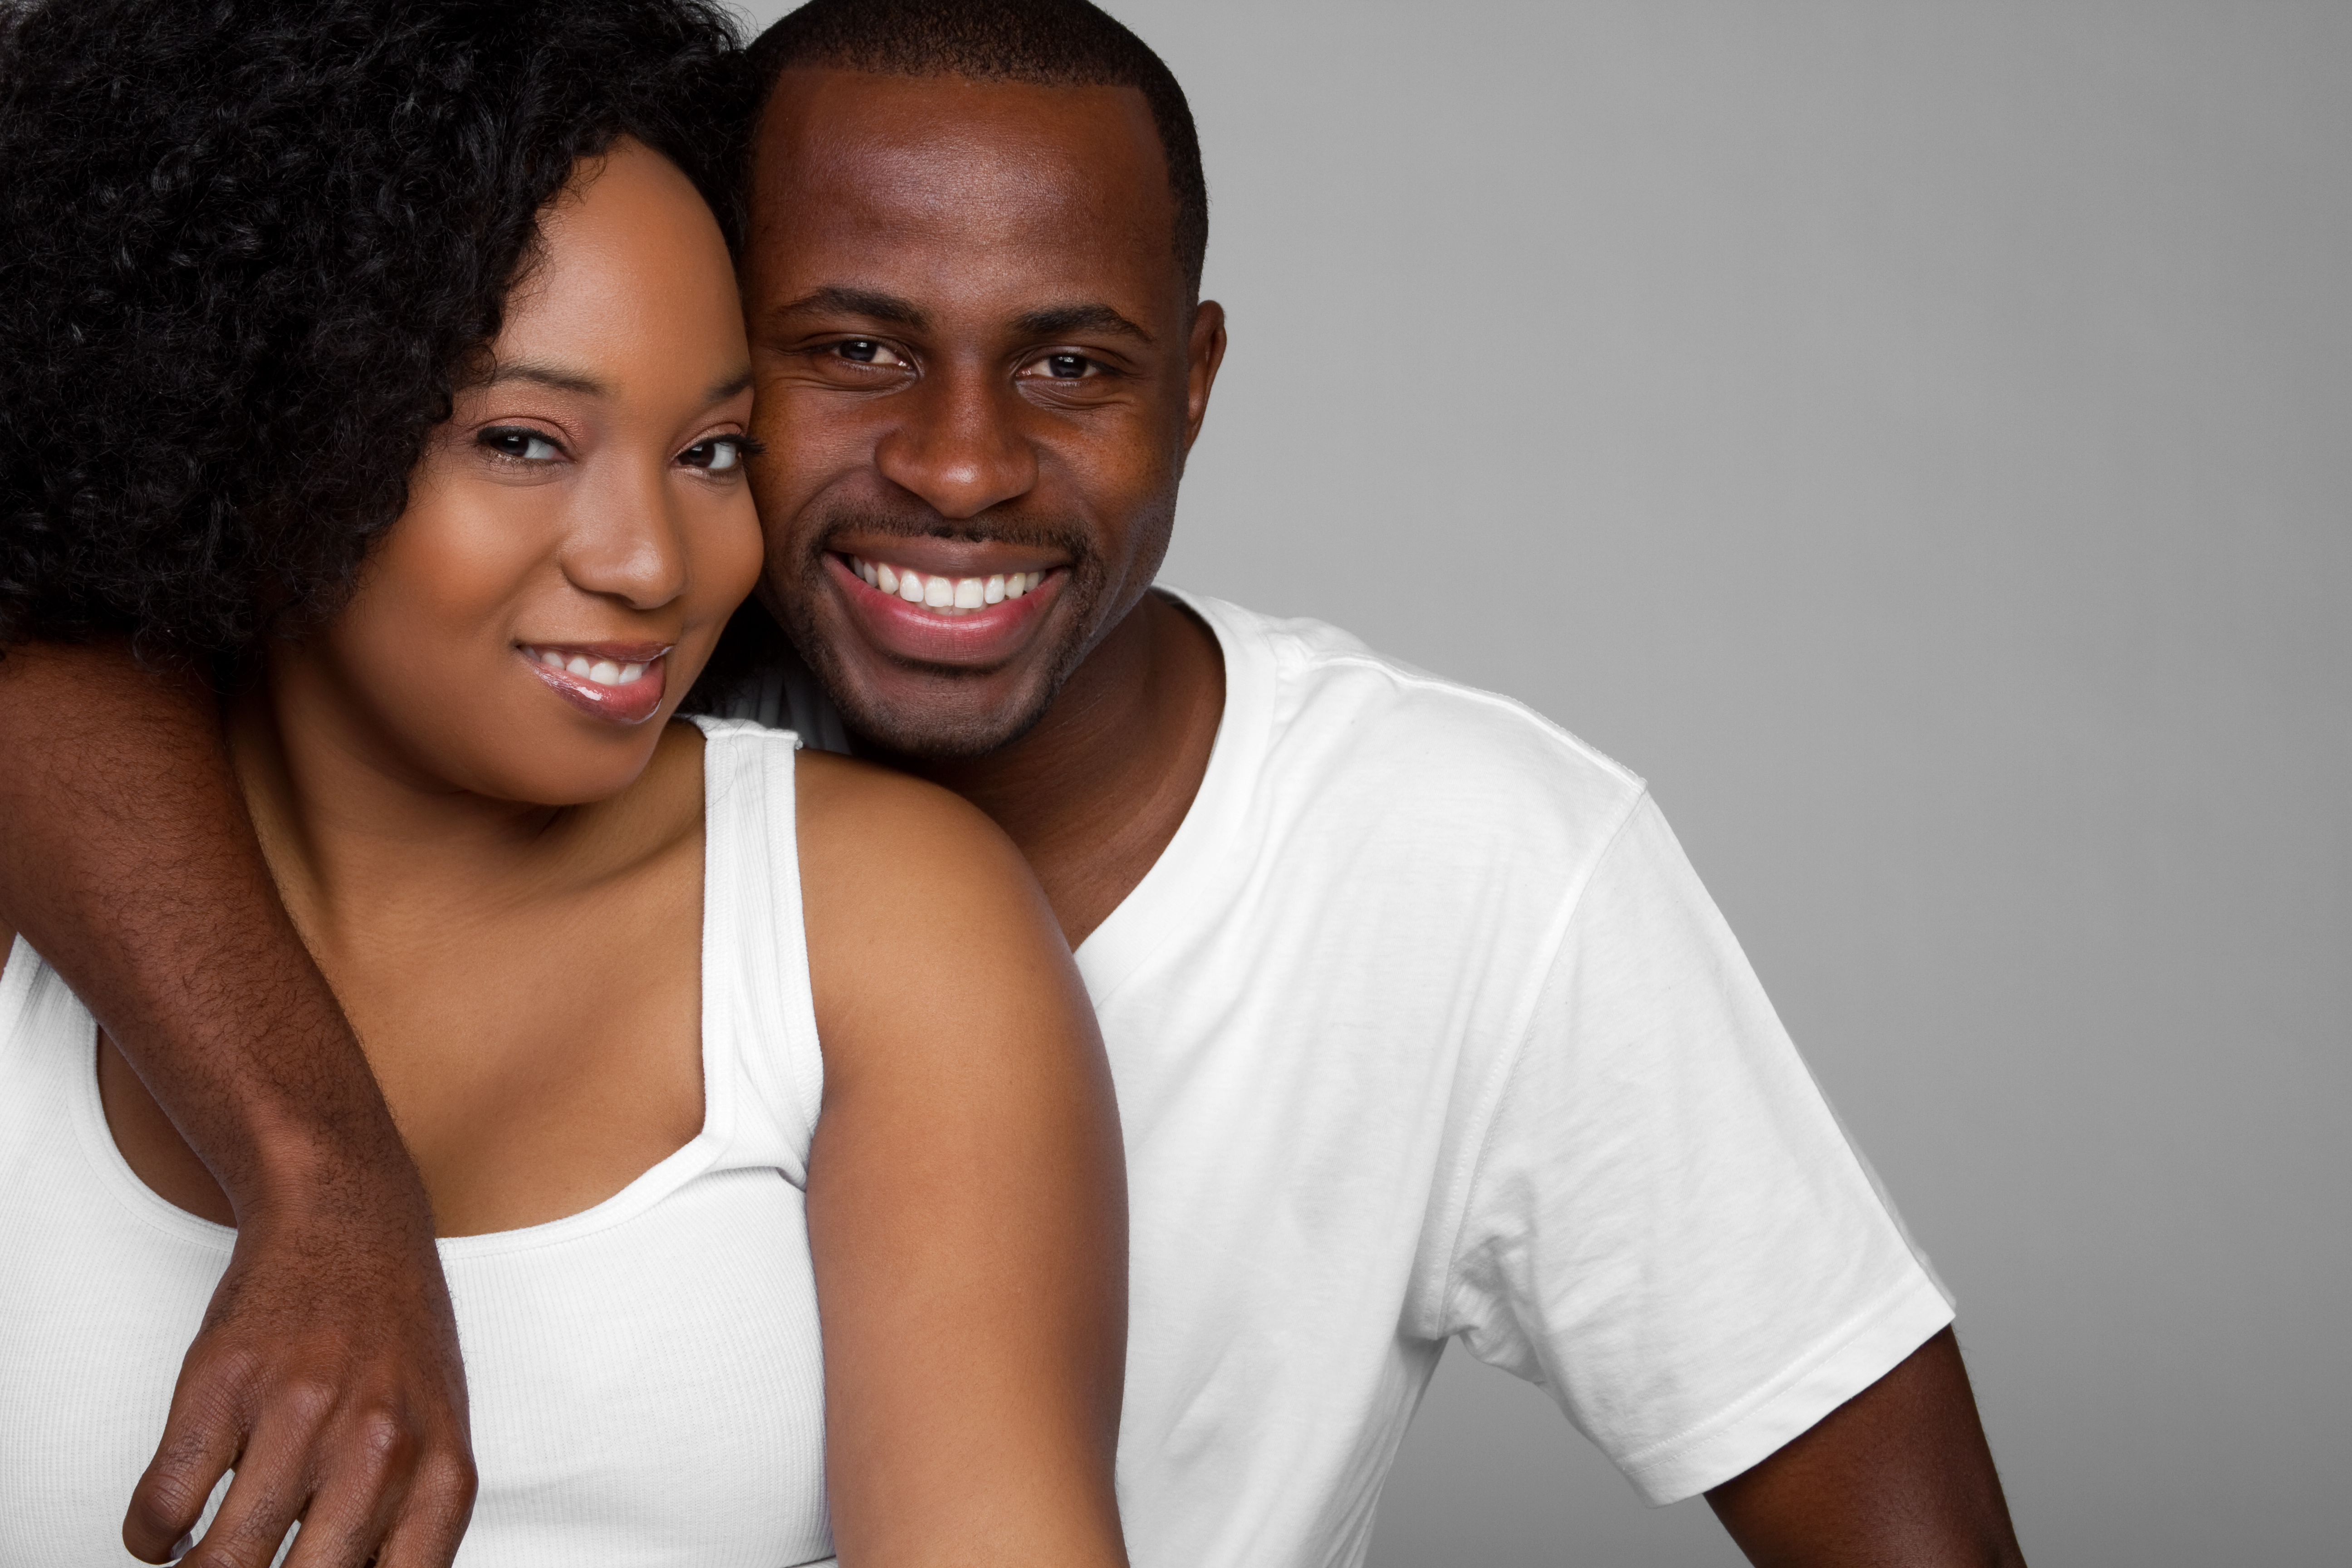 4 Reasons 'Living Apart Together' May Be Better Before Marriage